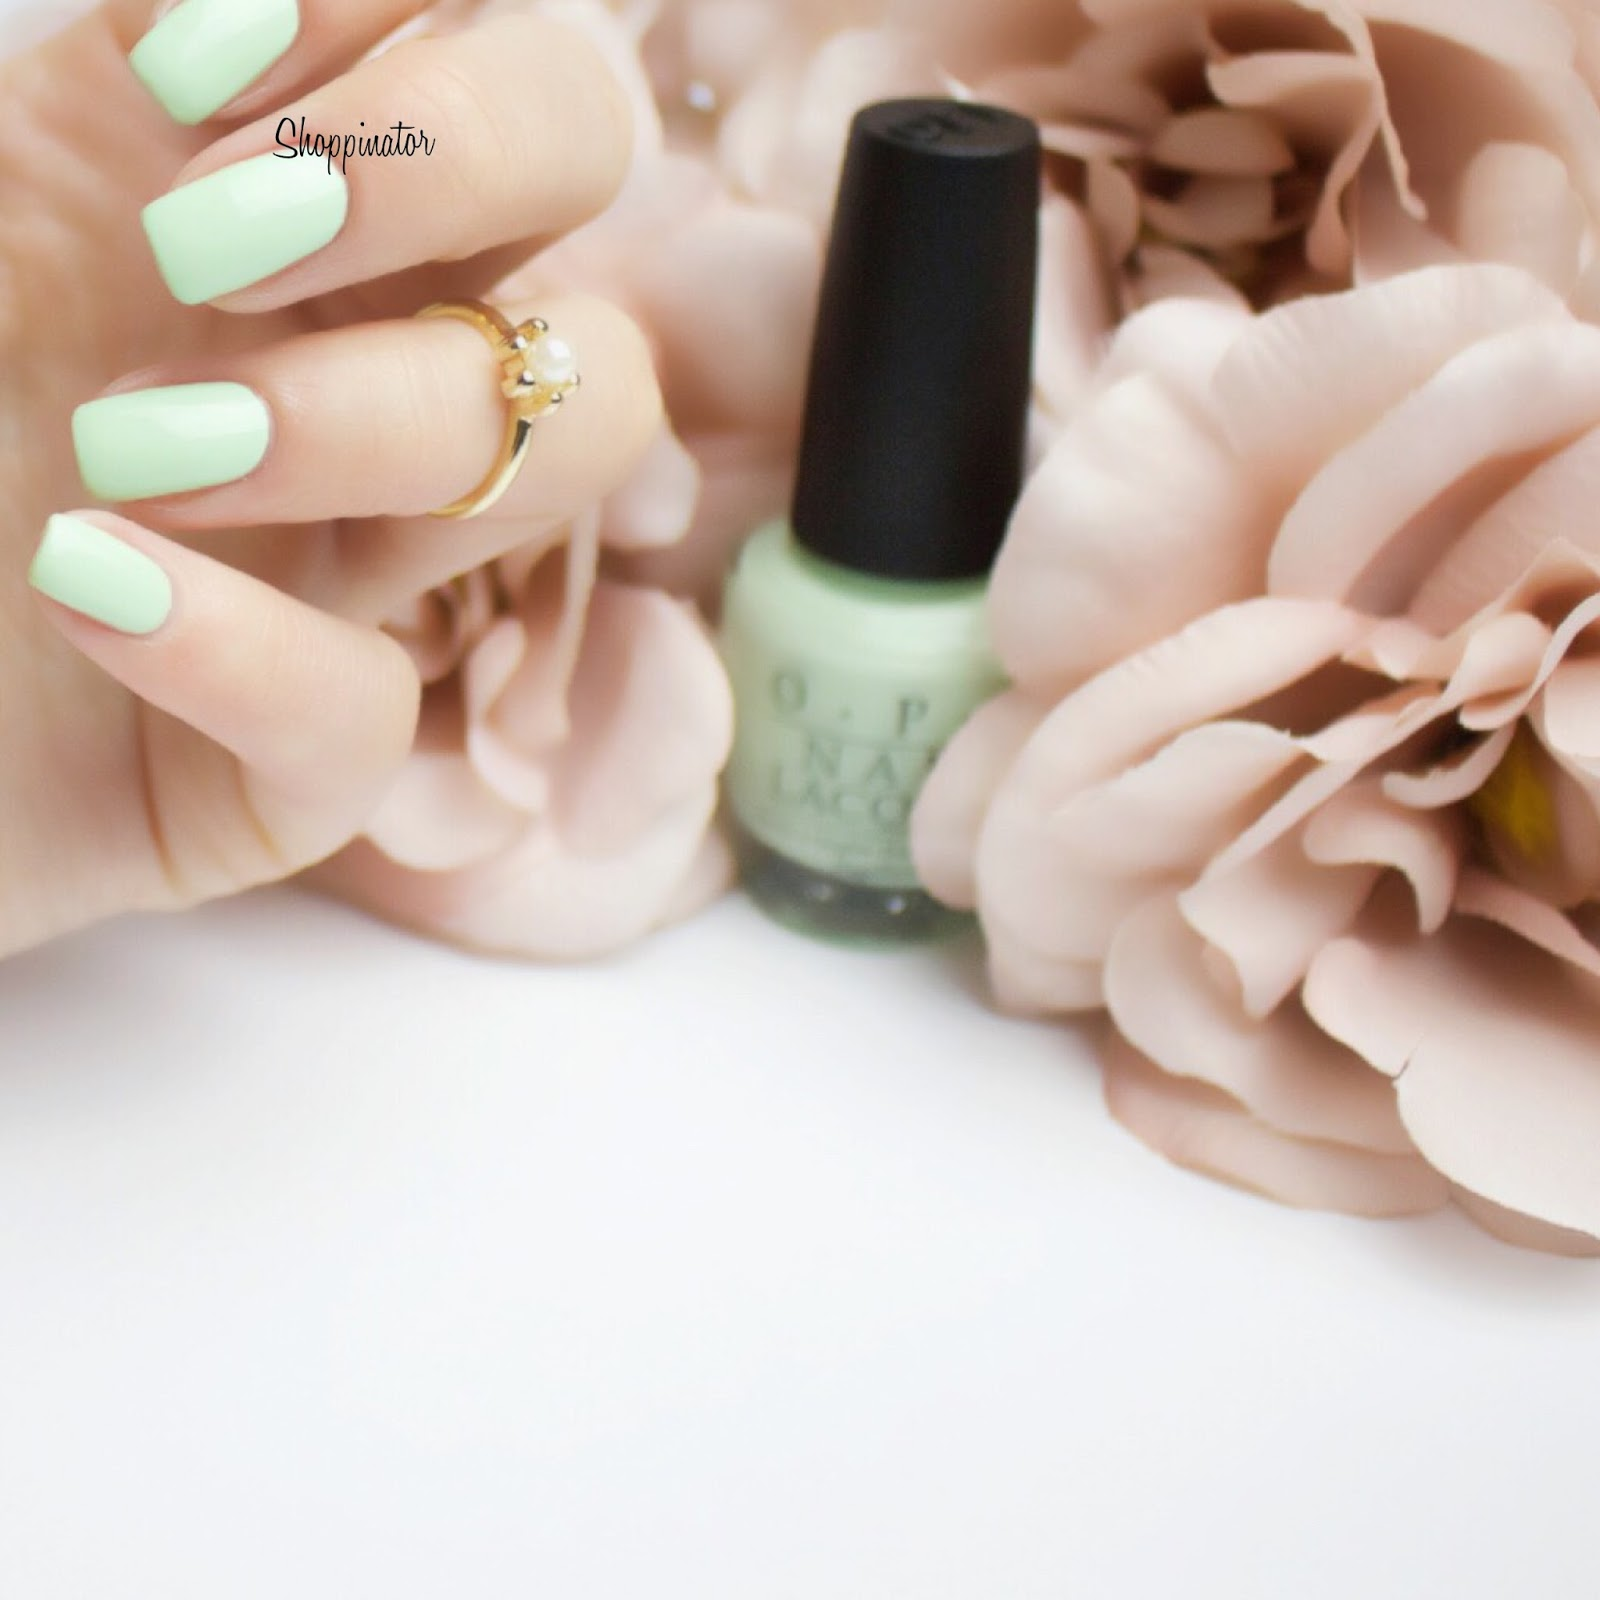 OPI-Hawaii-Shoppinator-Nagellack-Sommer-LE-OPIHawaii-Thats-Hula-rious-Hularious-Mint-Just-Lanai-ing-around-Pink-Aloha-from-Opi-Swatch-Swatches-Review